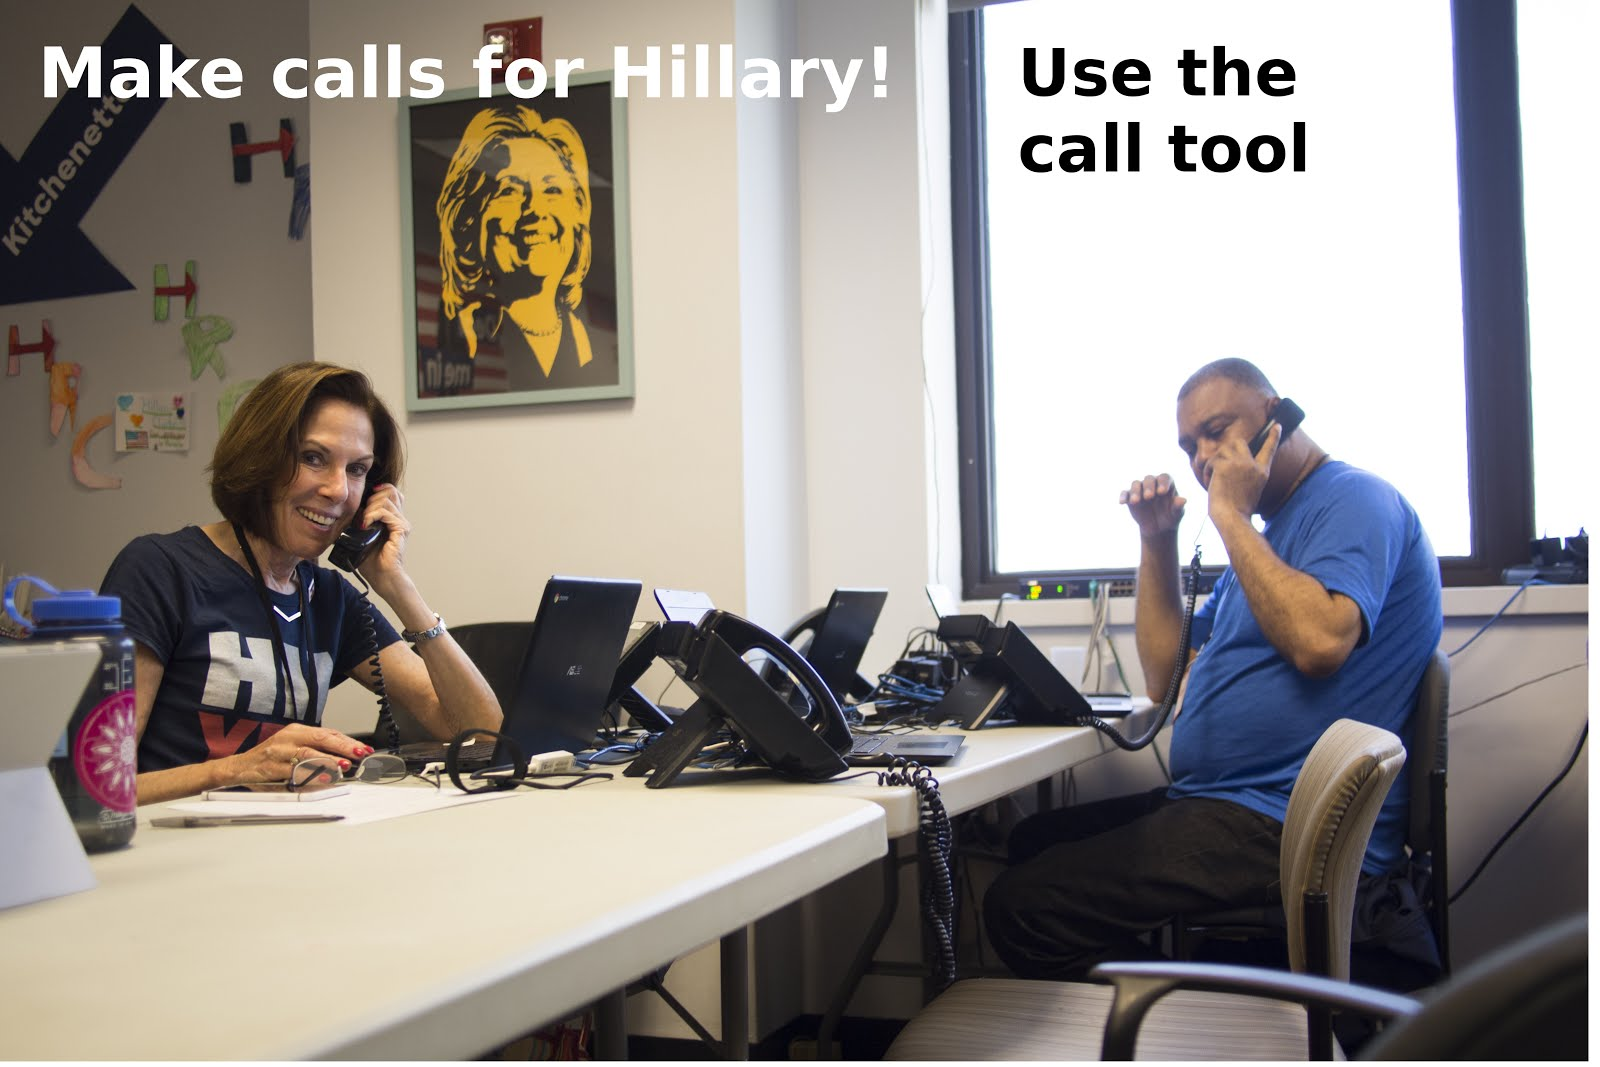 Phone bank for Hillary!